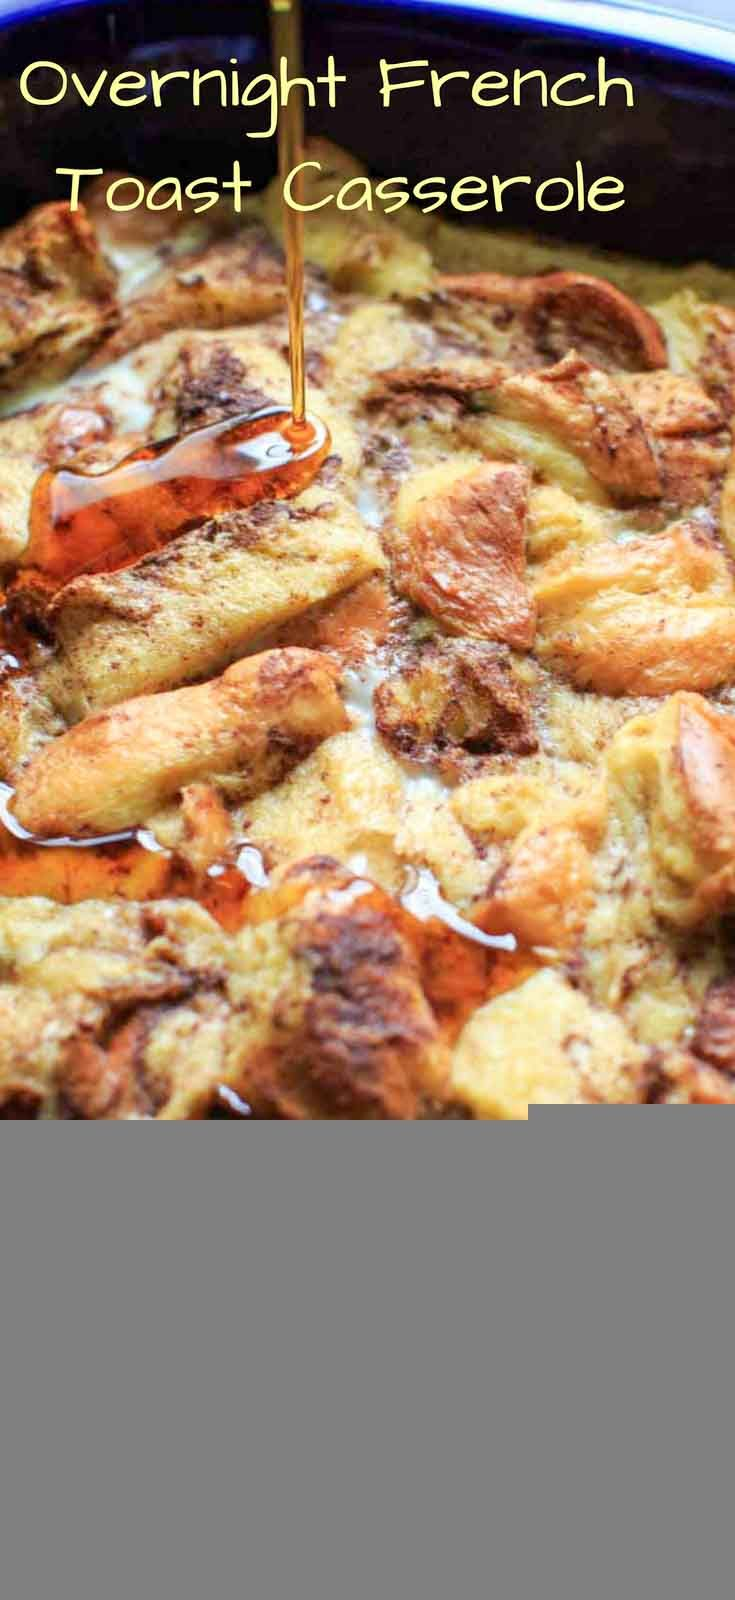 Overnight French Toast Casserole with cinnamon, vanilla and a secret ingredient. As healthy as french toast can be while still being an easy and delicious breakfast to feed a crowd. via @trialandeater